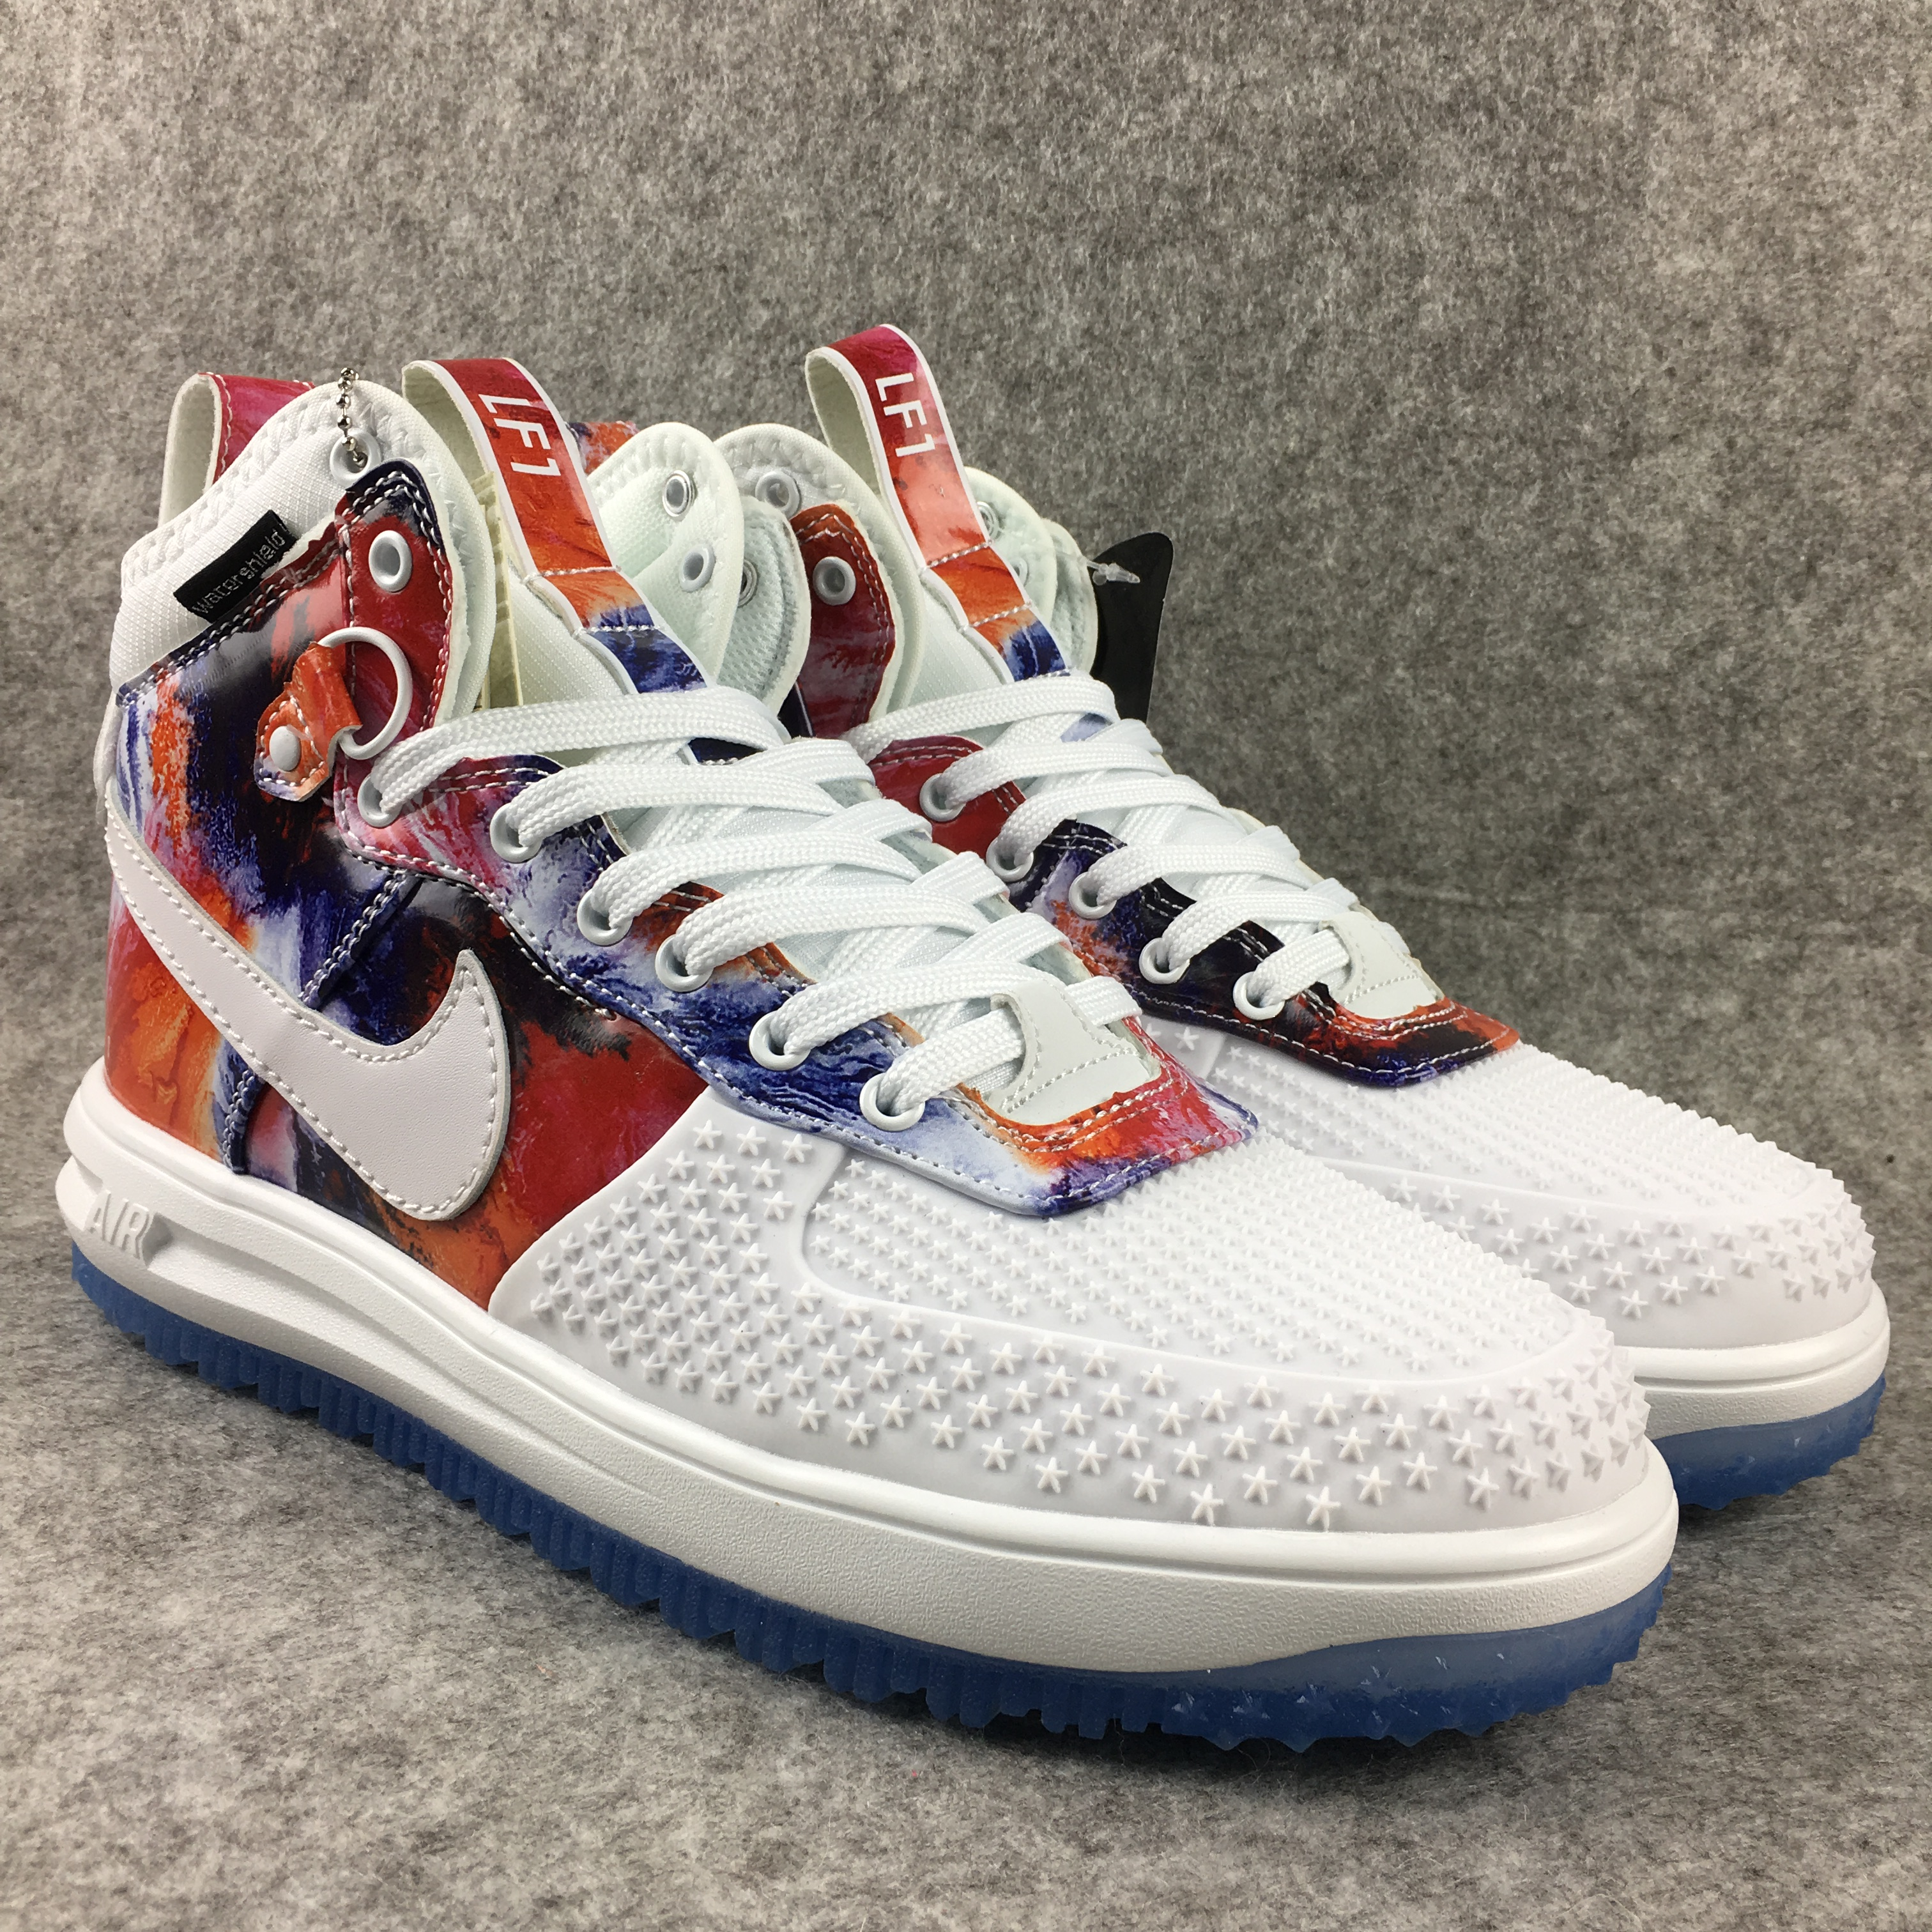 New Nike Lunar Force 1 High White Colorful